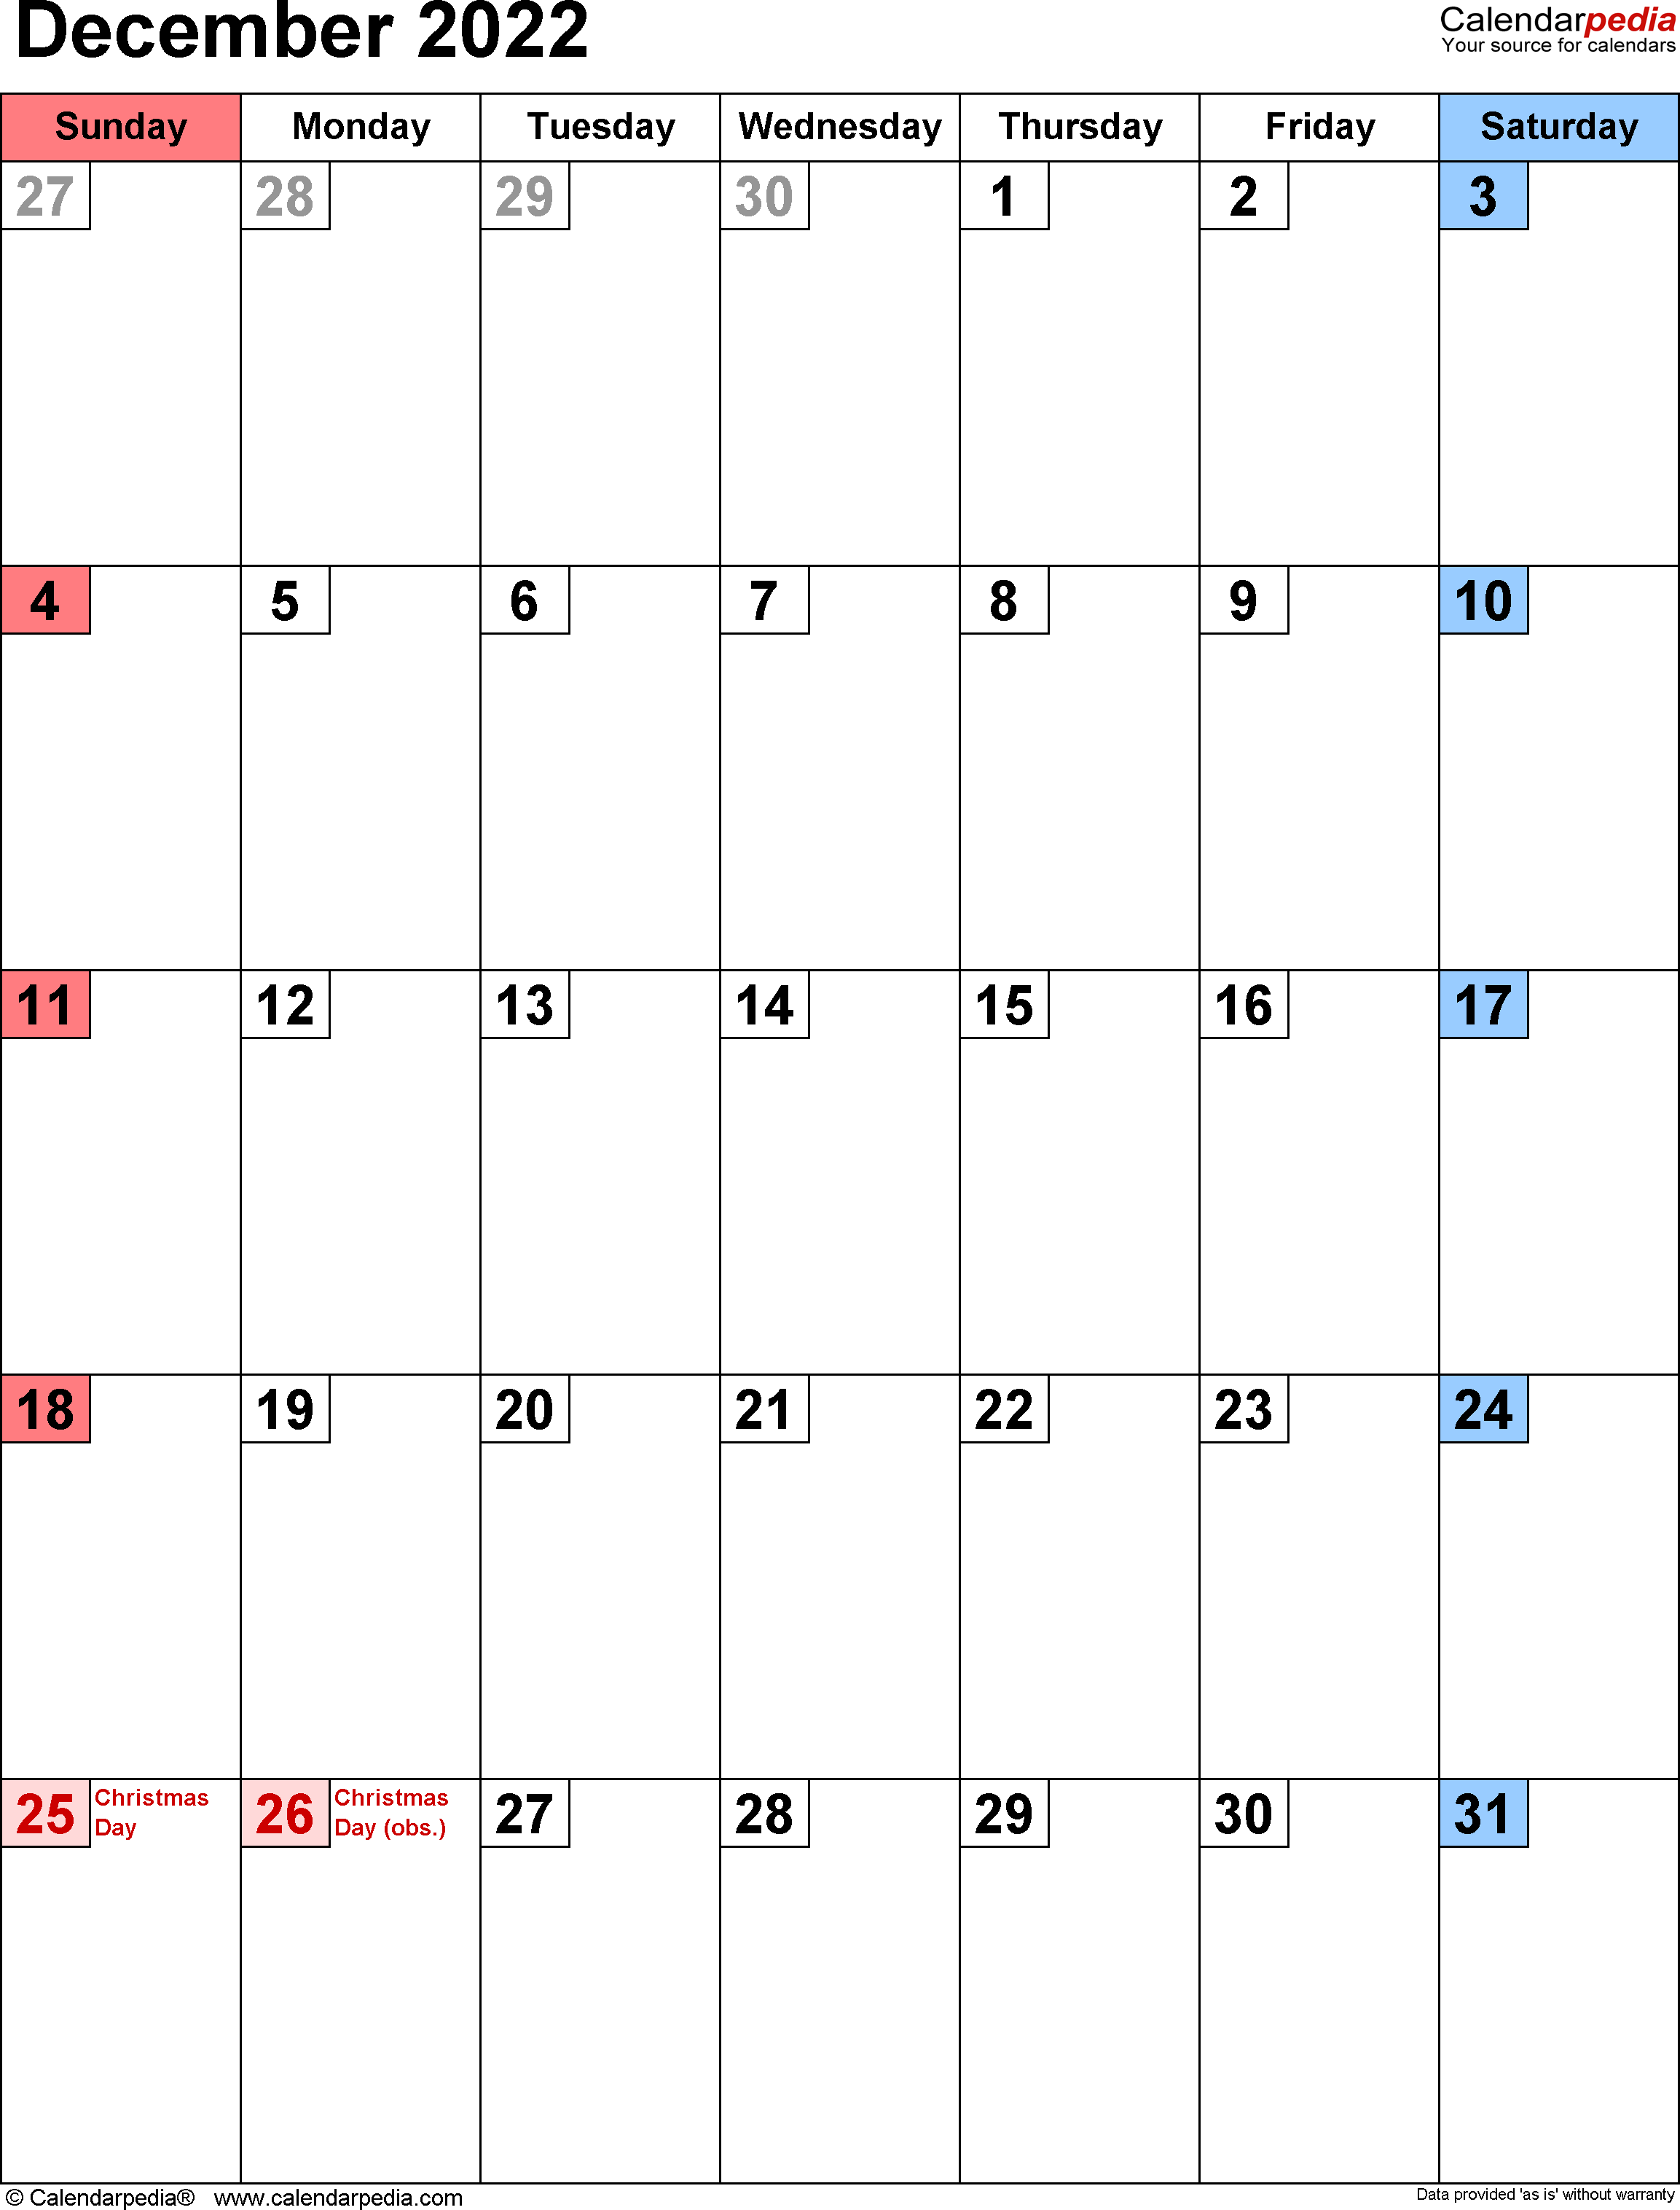 November December 2022 Calendar.December 2022 Calendar Templates For Word Excel And Pdf